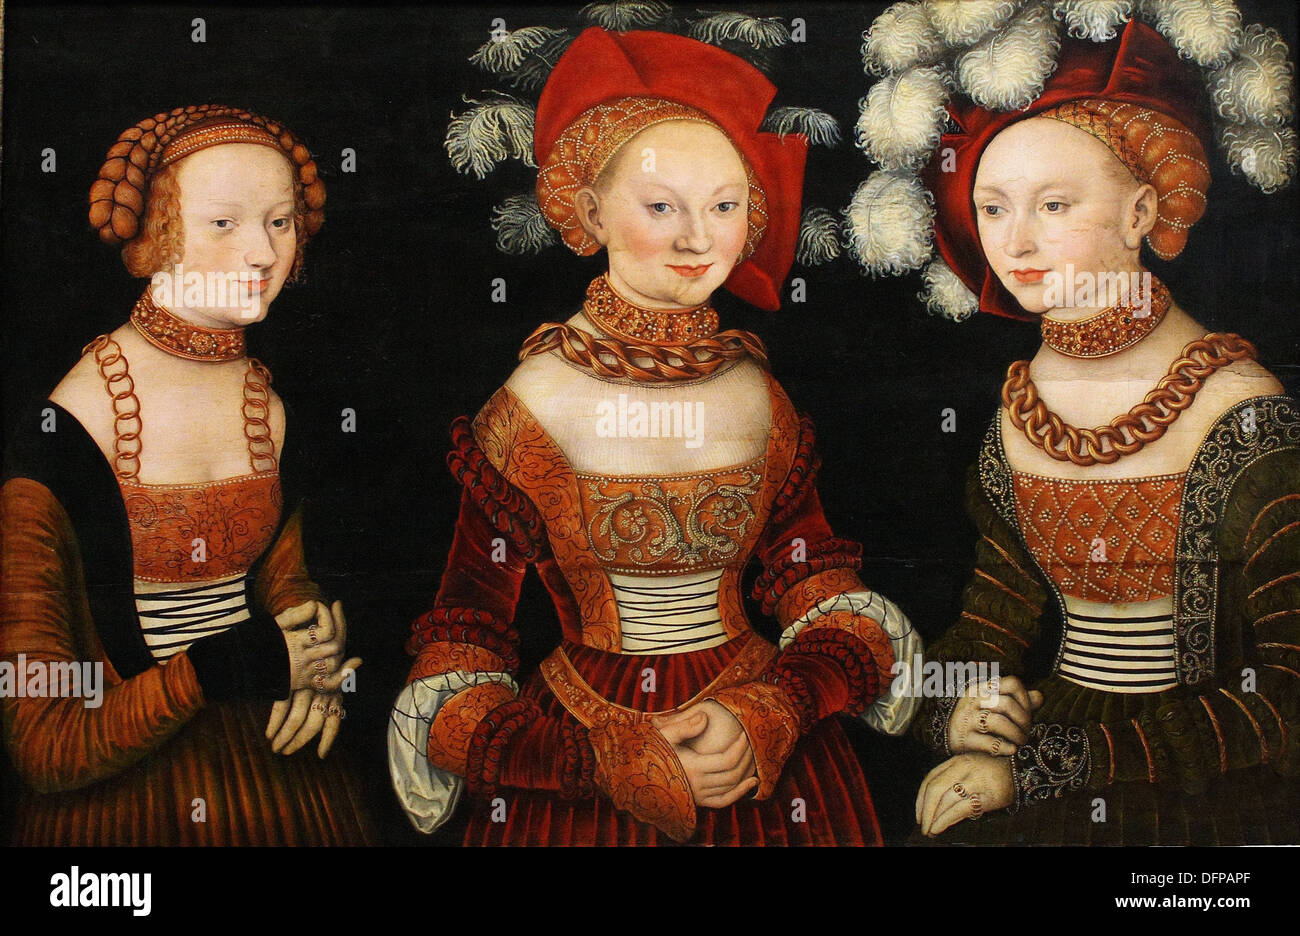 Lucas CRANACH The Elder - The Saxon Princesses (Sibyl, Emilia and Sidonia of Saxe) - 1530 - Kunsthistoriches Museum - Vienna - Stock Image